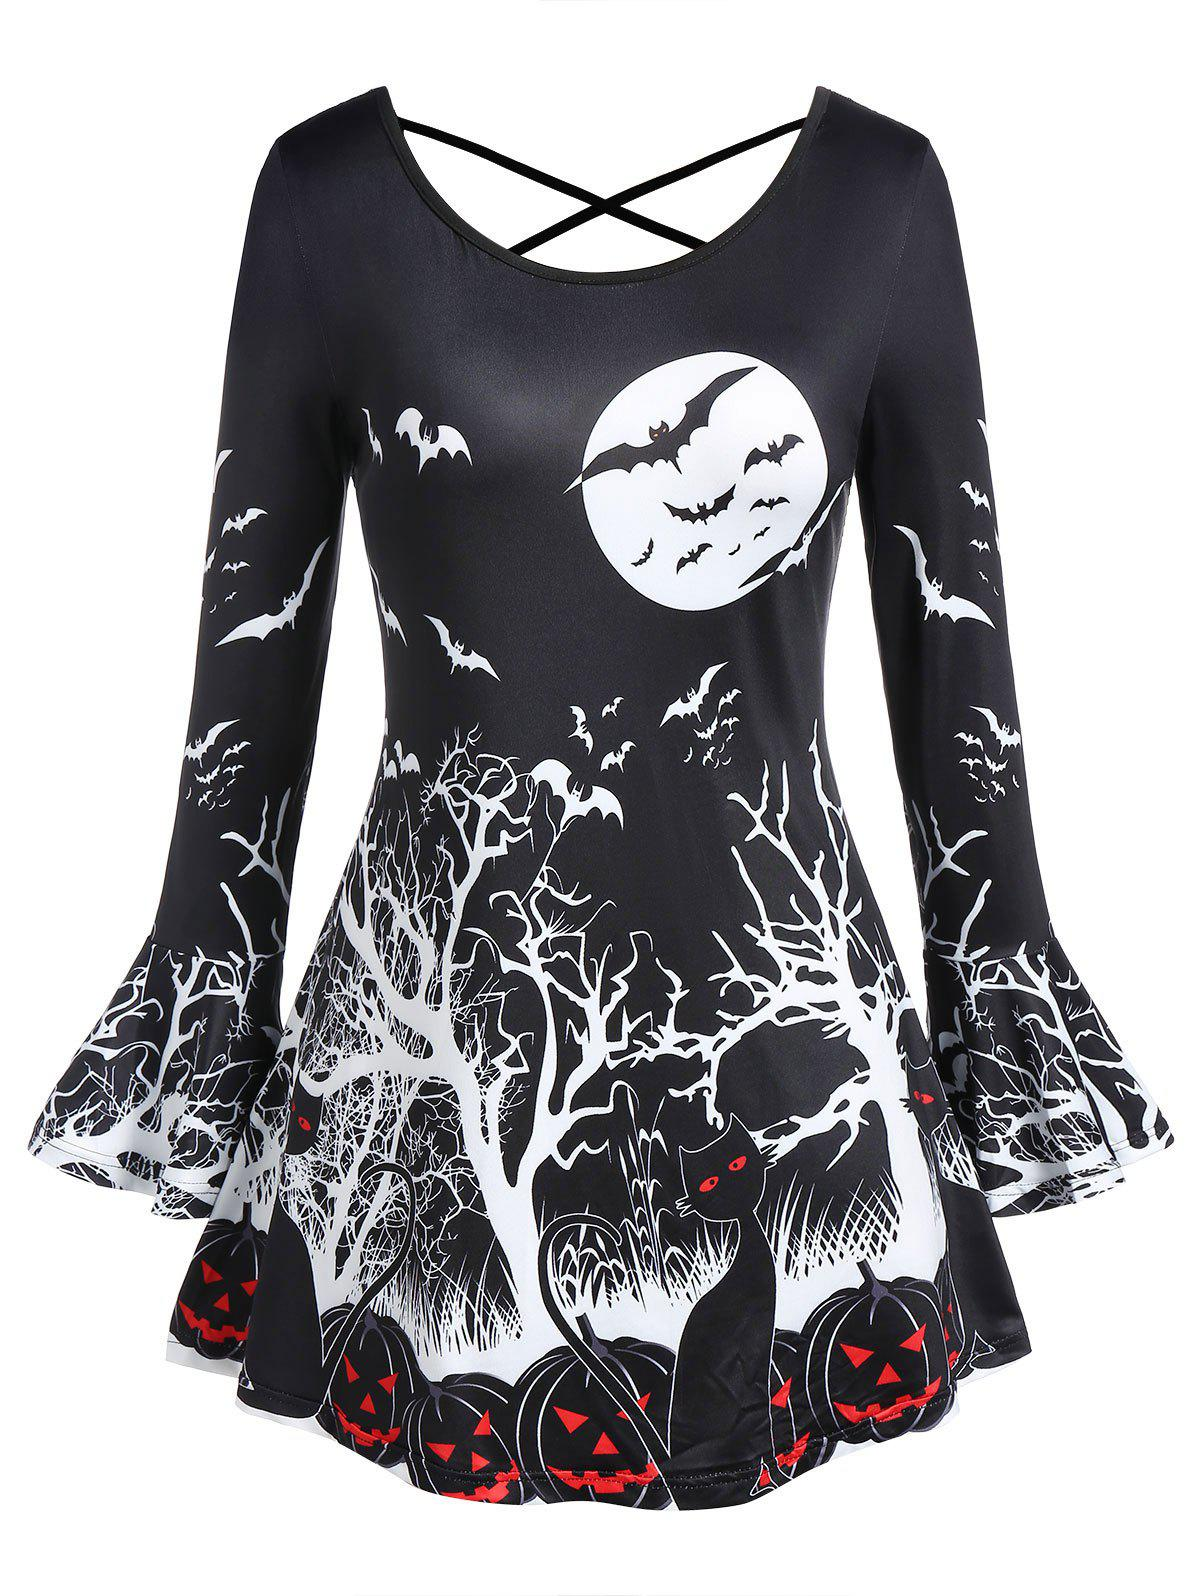 Fashion Plus Size Long Sleeve Bat Print Criss Cross Halloween T Shirt